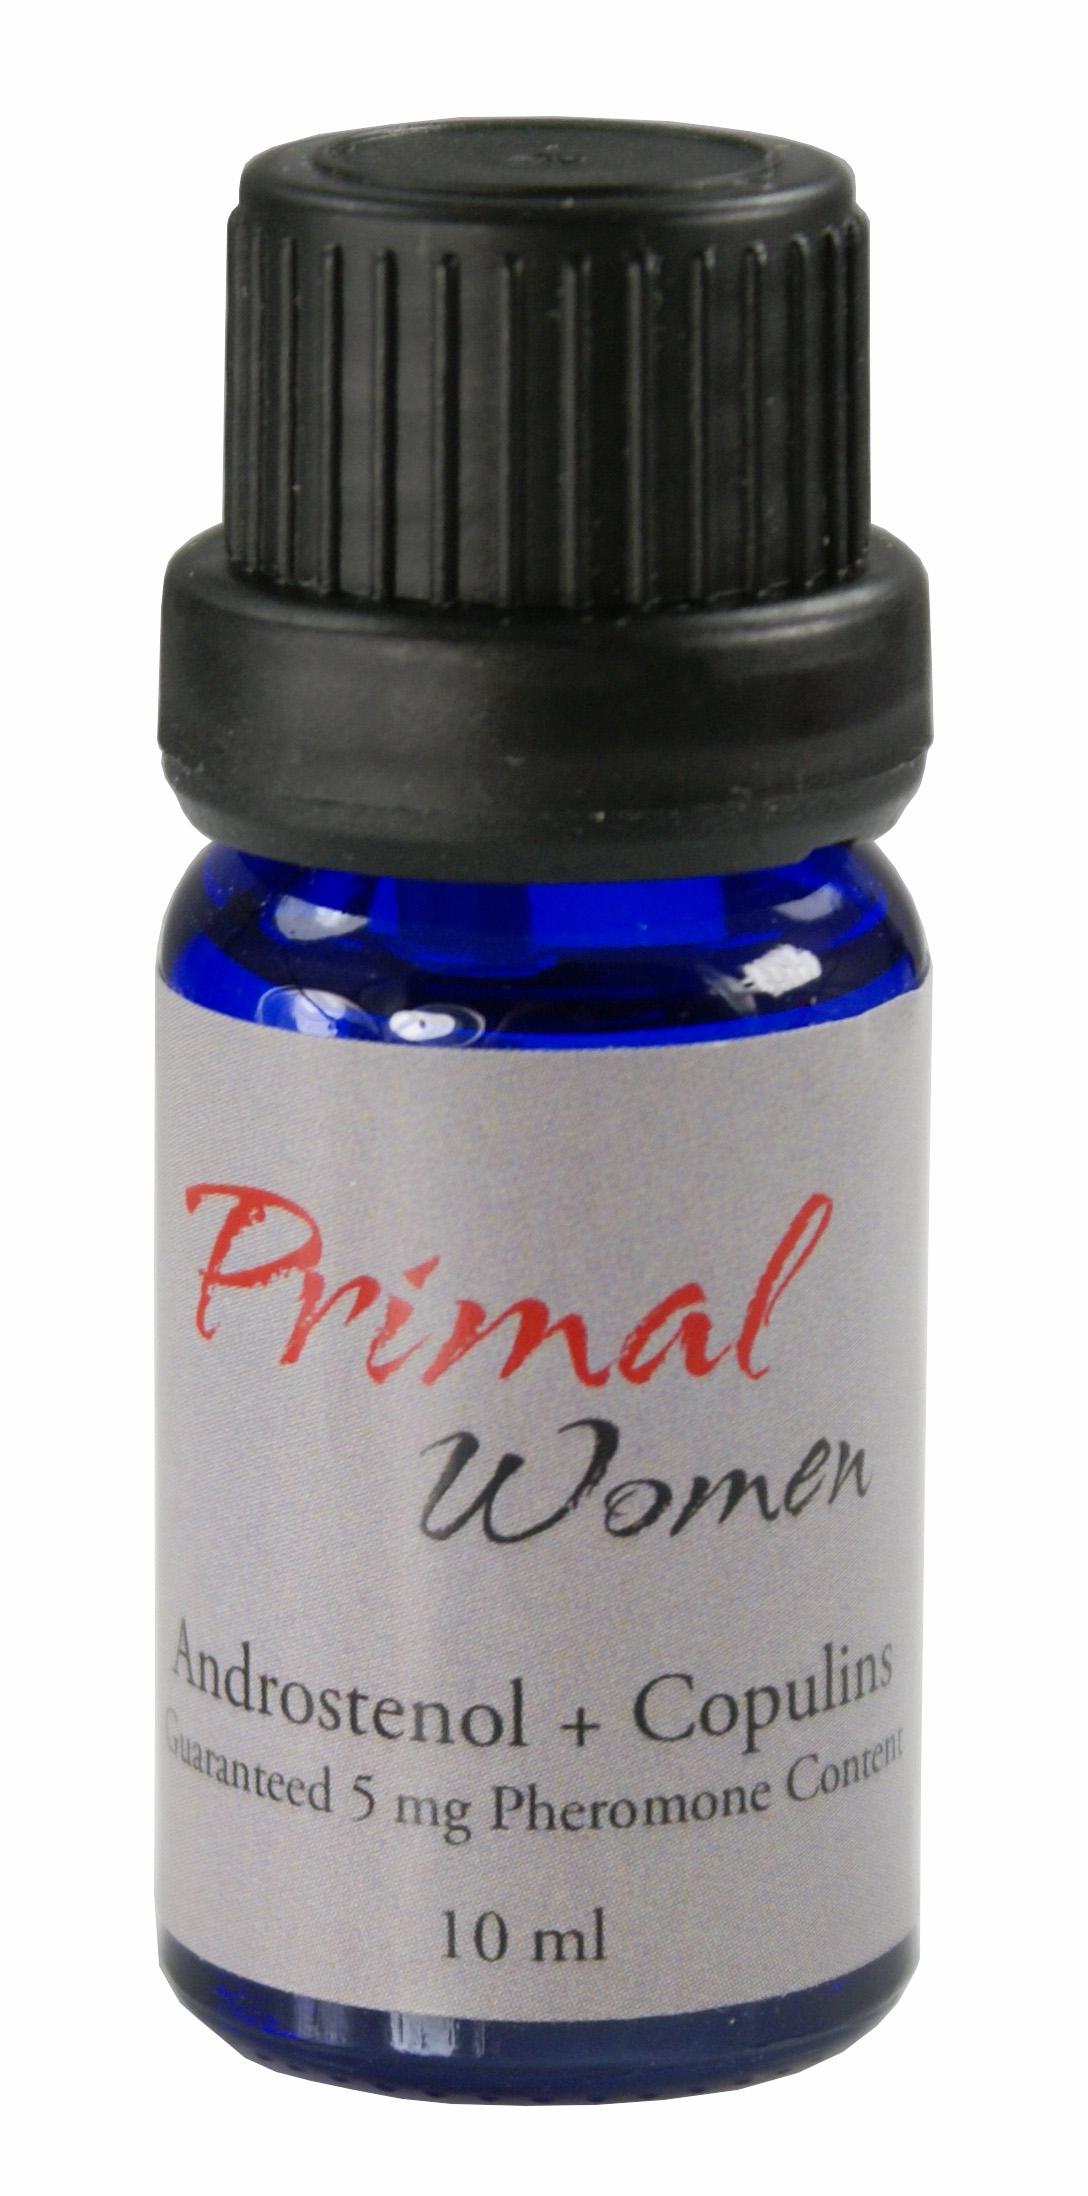 Love Scent coupon: Primal Women